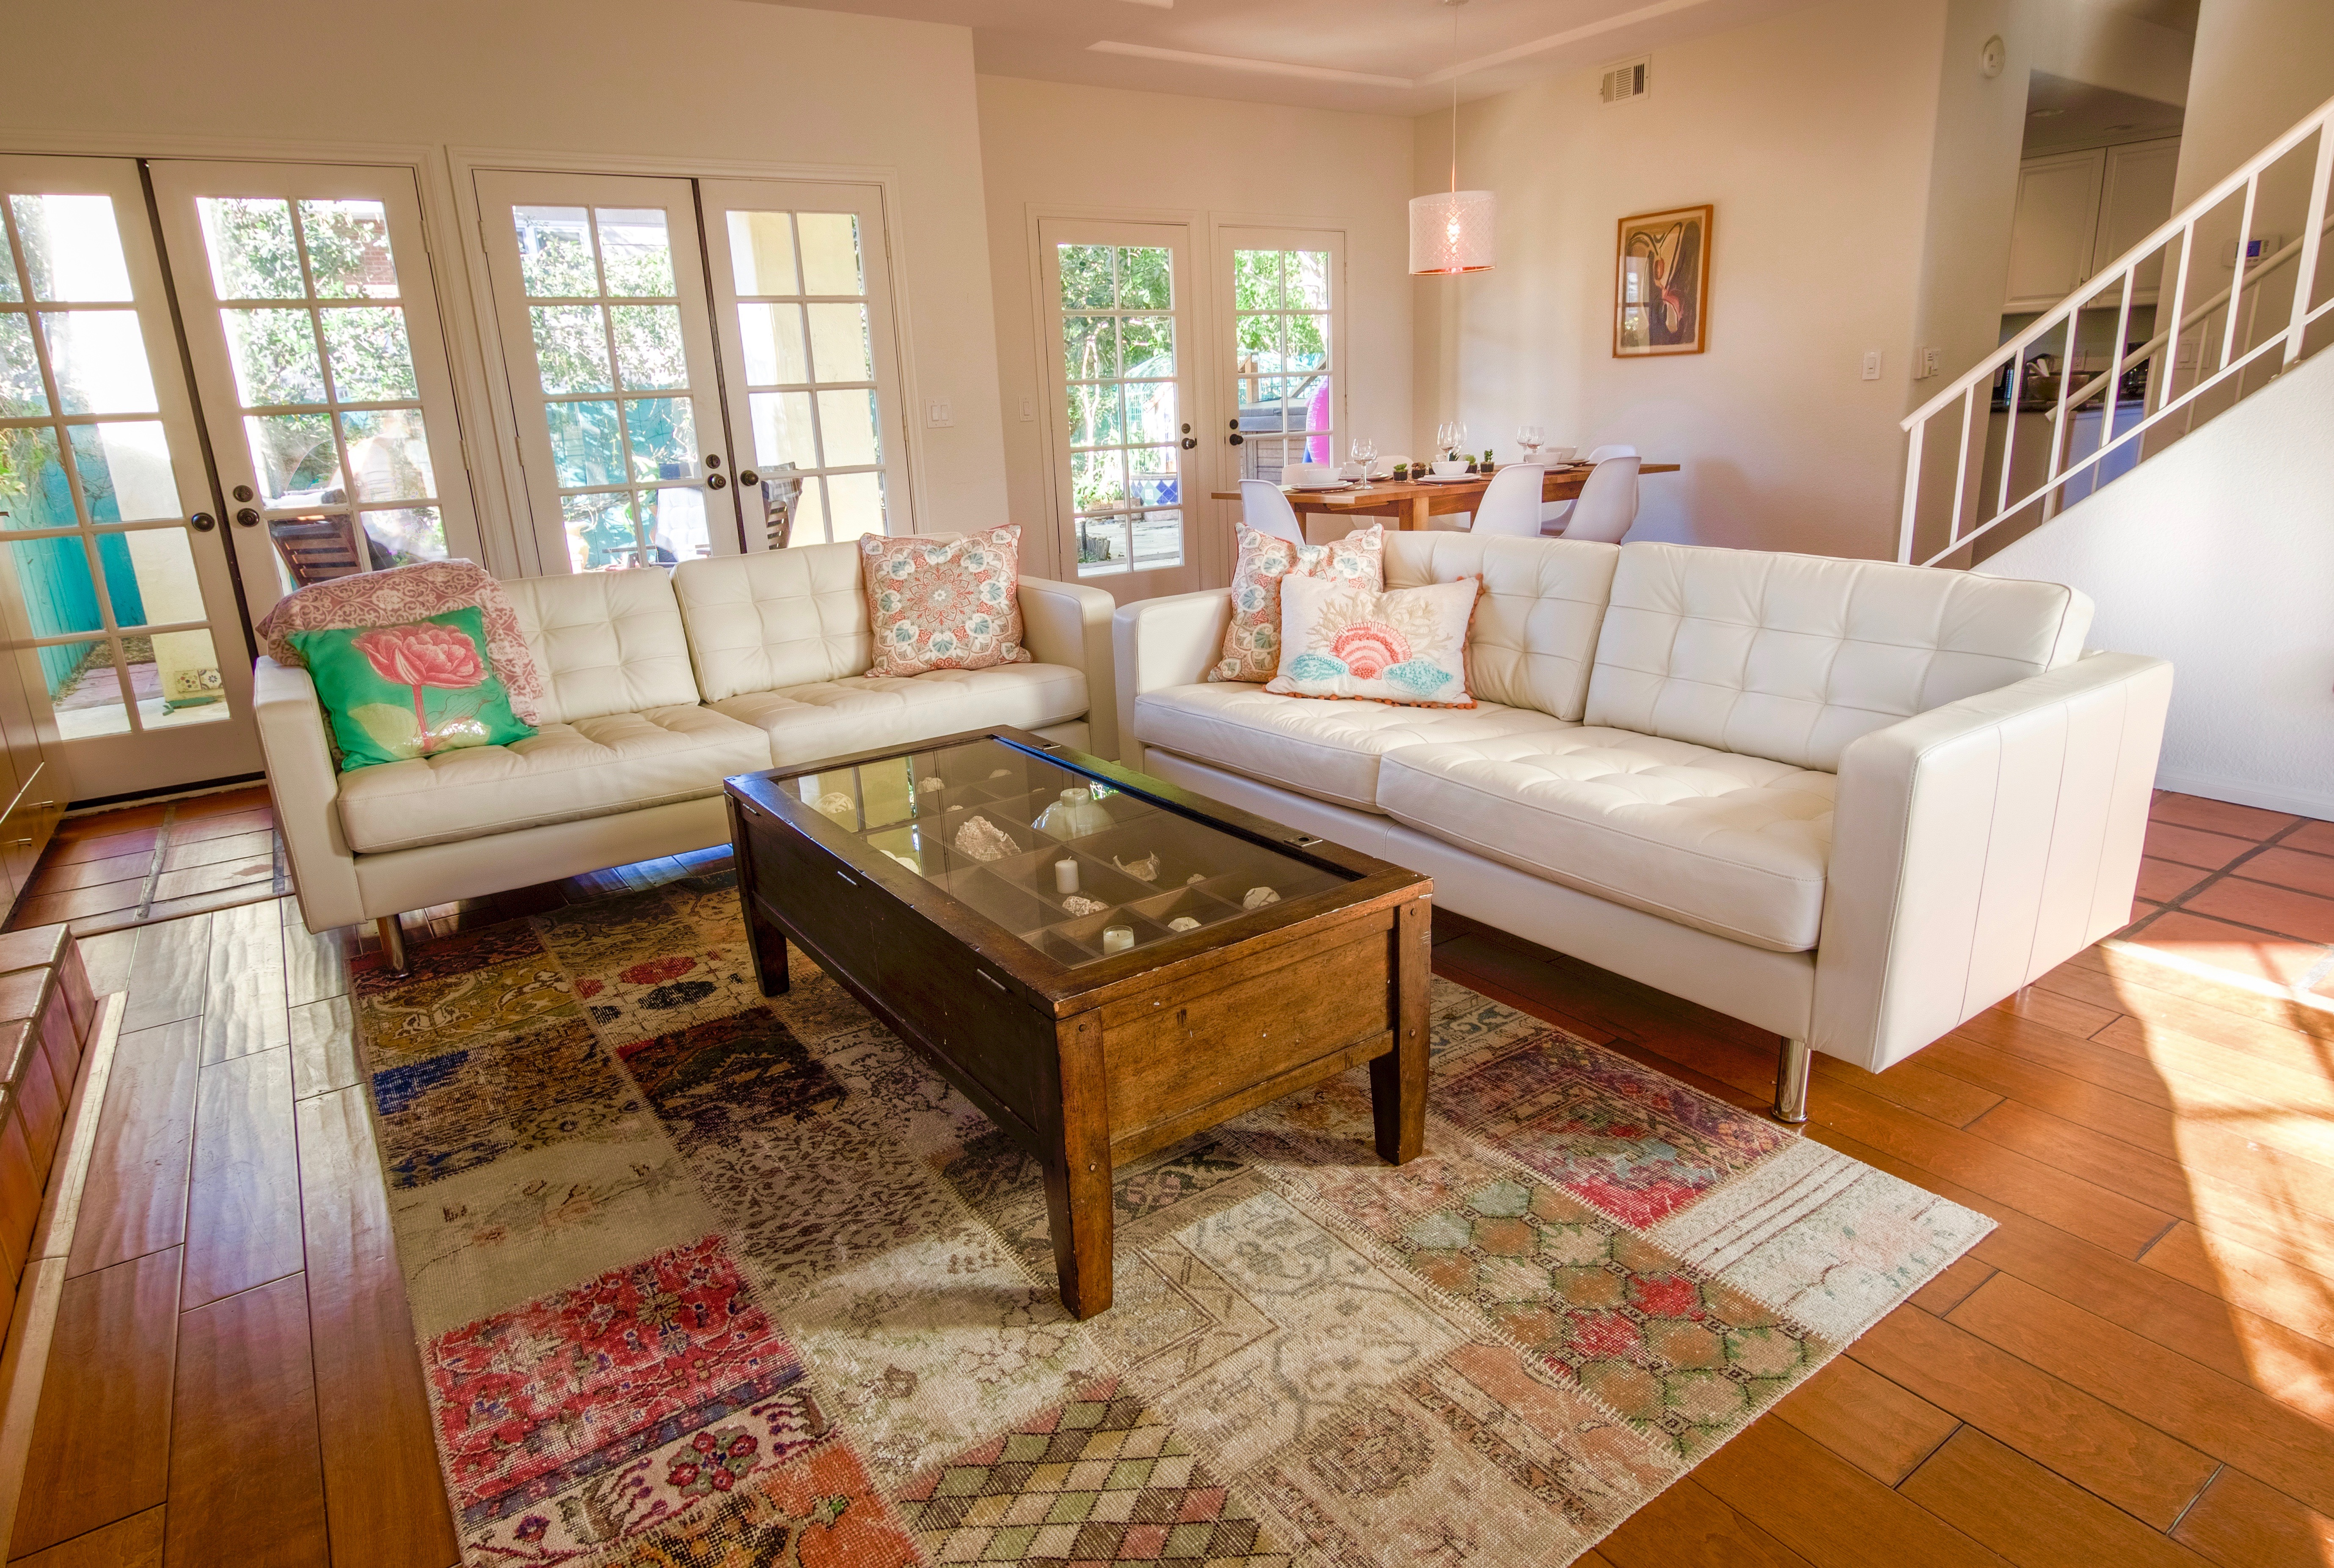 Home Staging: